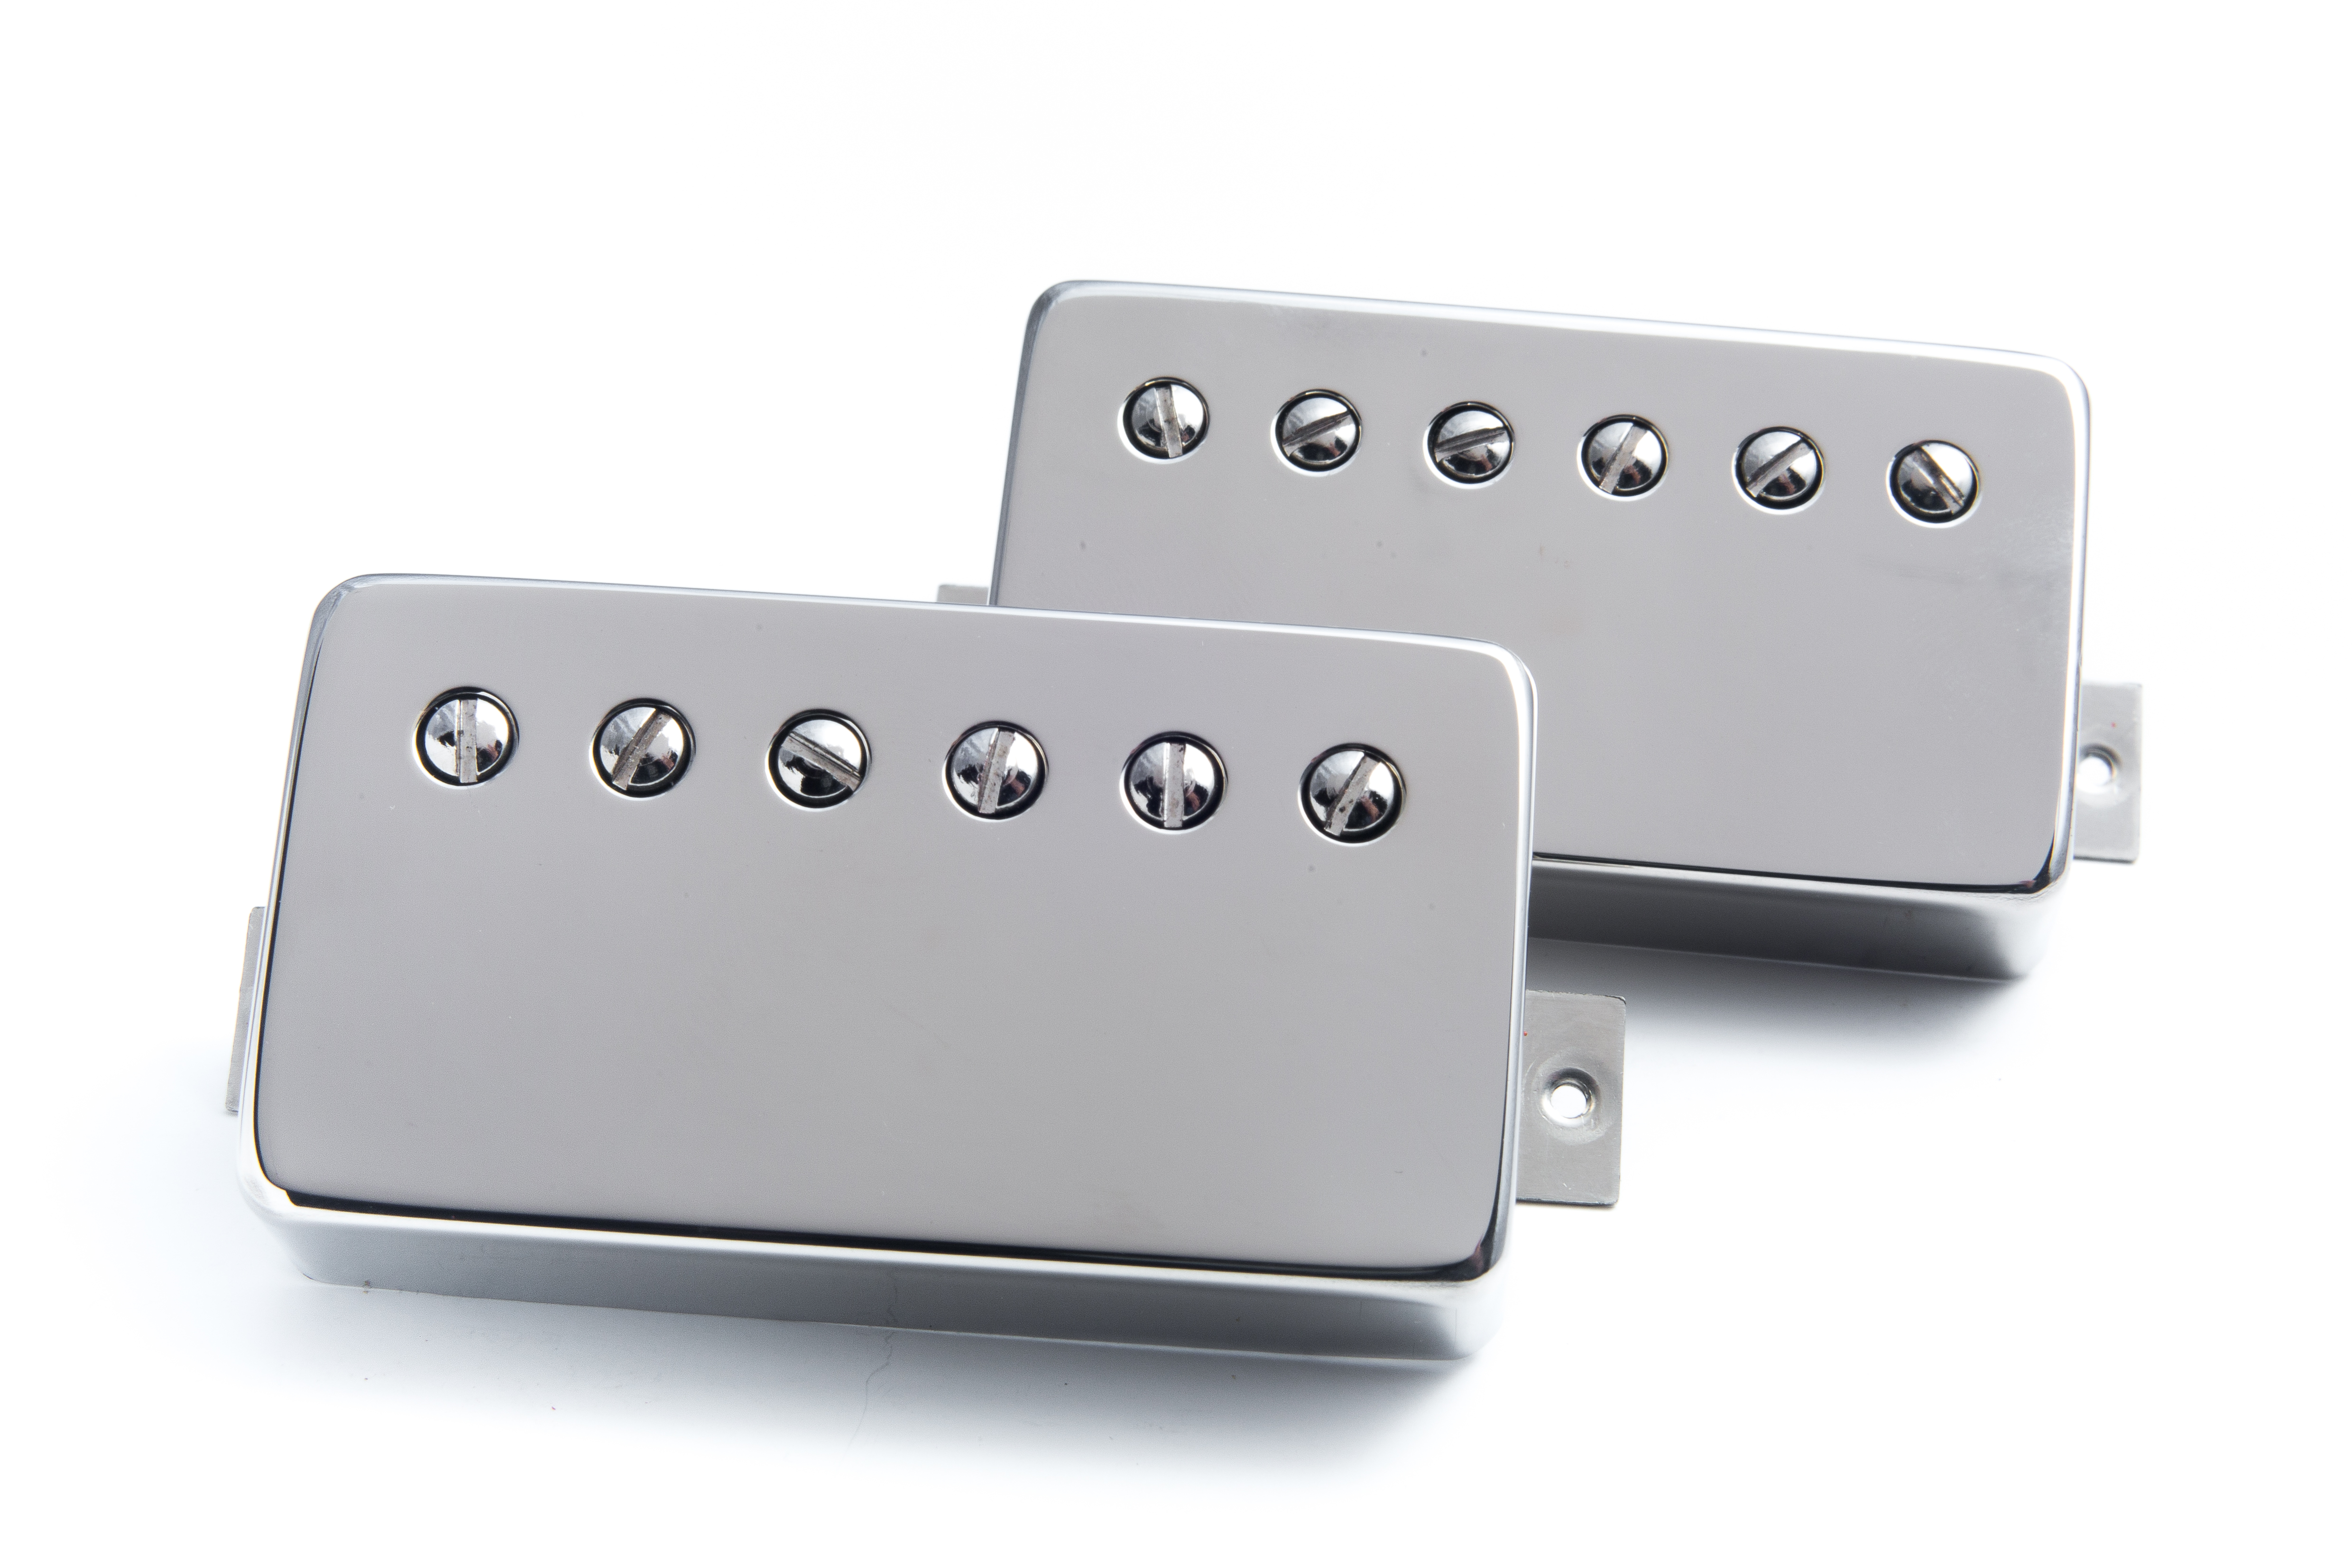 3d47ed2f1598acb9144bc602e7af9baa56c76c3d our humbucker pickup range bare knuckle pickups bare knuckle pickups wiring diagram at gsmx.co